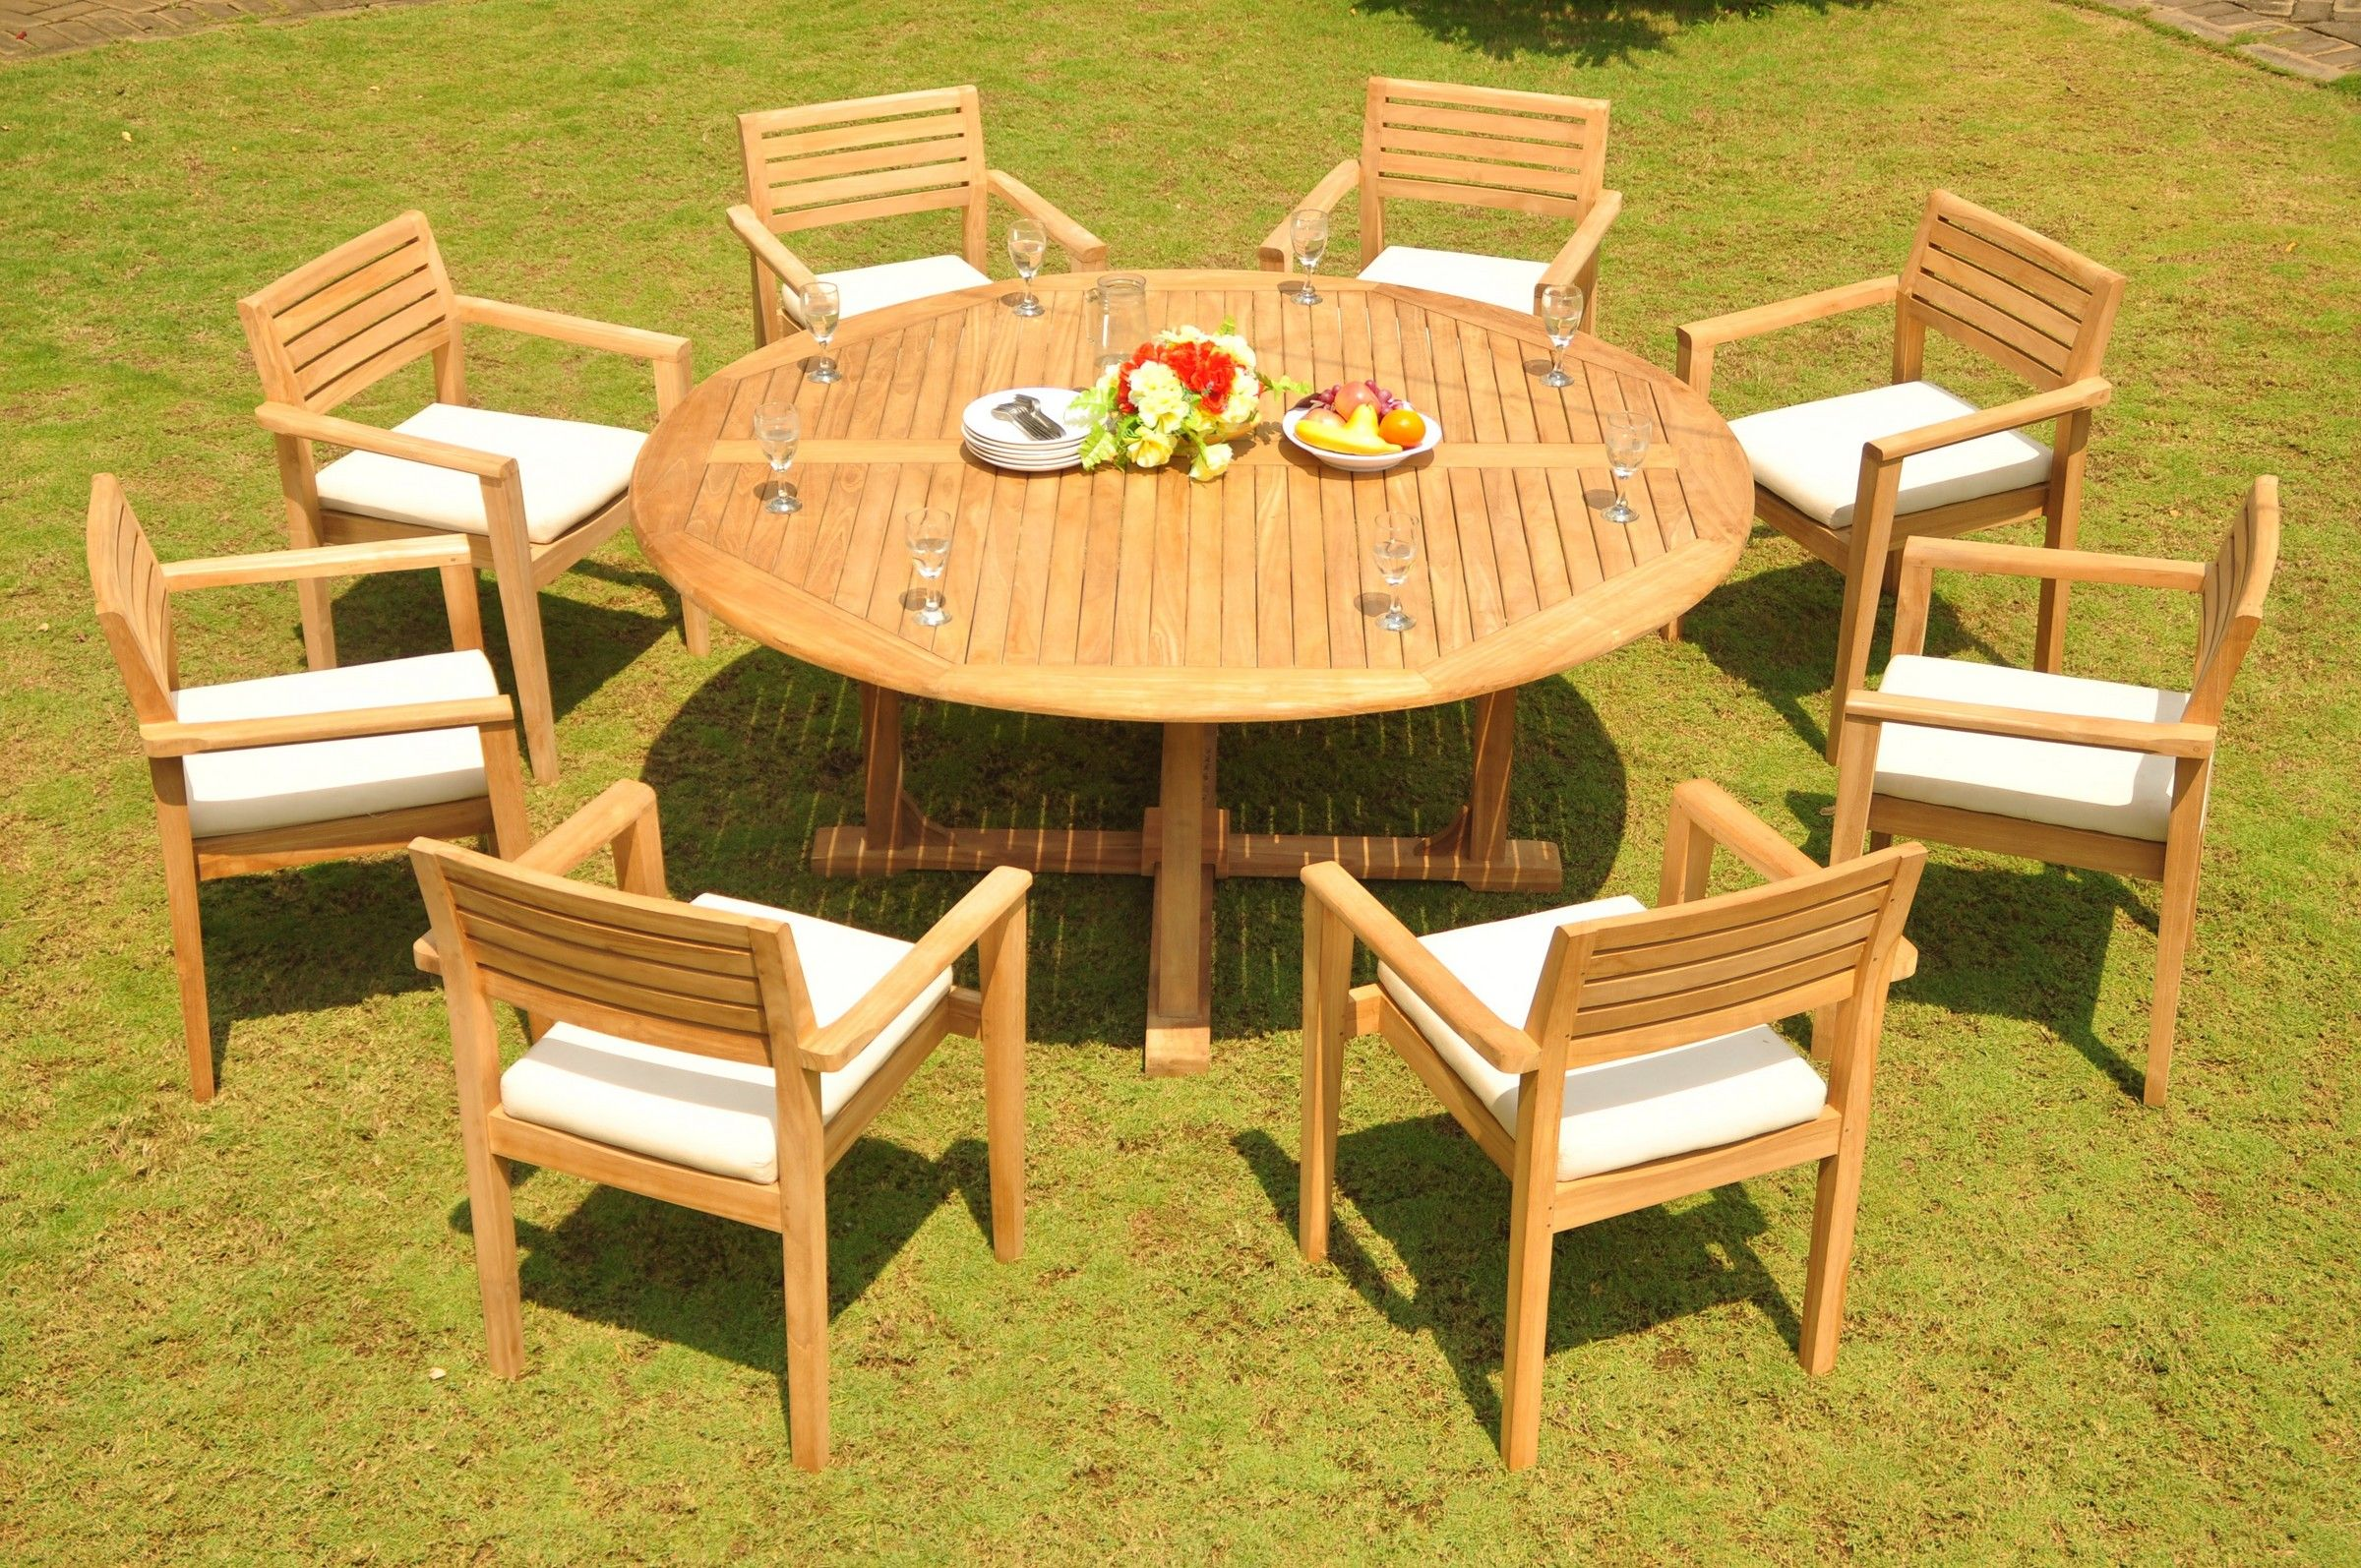 Teak Dining Set 8 Seater 9 Pc 72 U0026quot Round Dining Table And In 2020 Metal Outdoor Furniture Outdoor Furniture Sets Round Dining Table